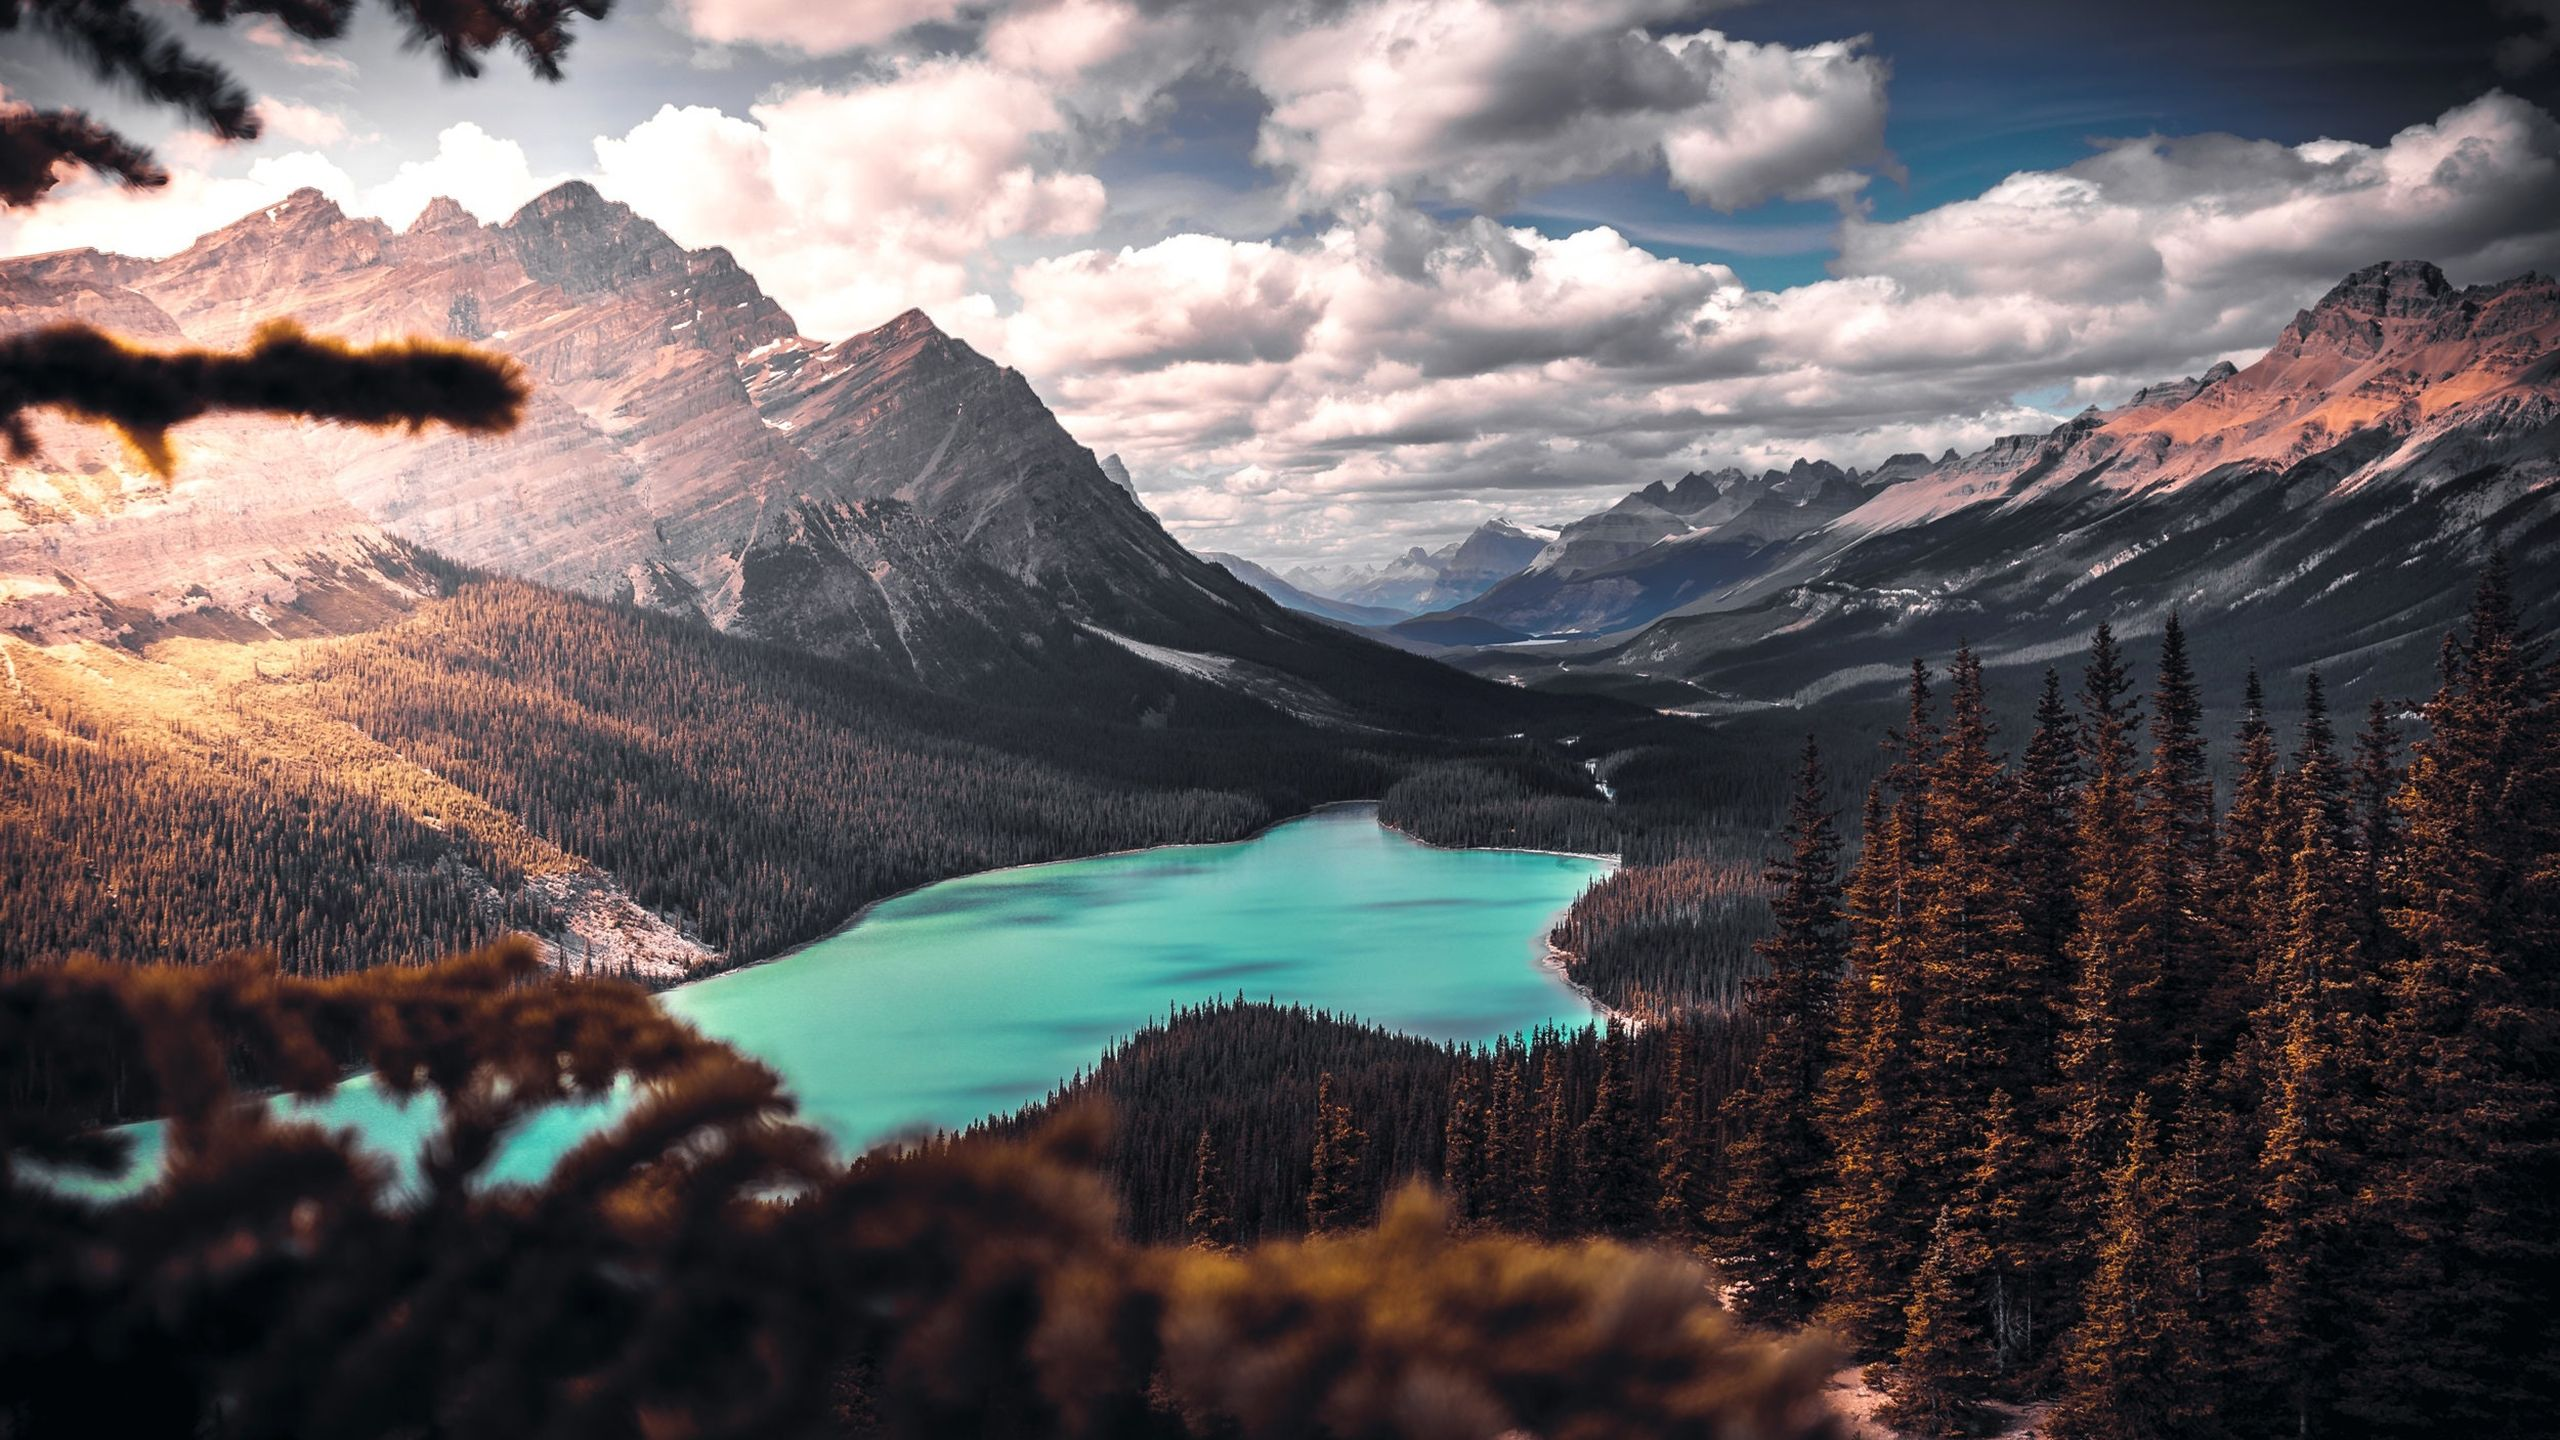 Lake Mountain Trees Clouds Scenic Scenic Wallpaper Scenic Landscape Landscape Wallpaper